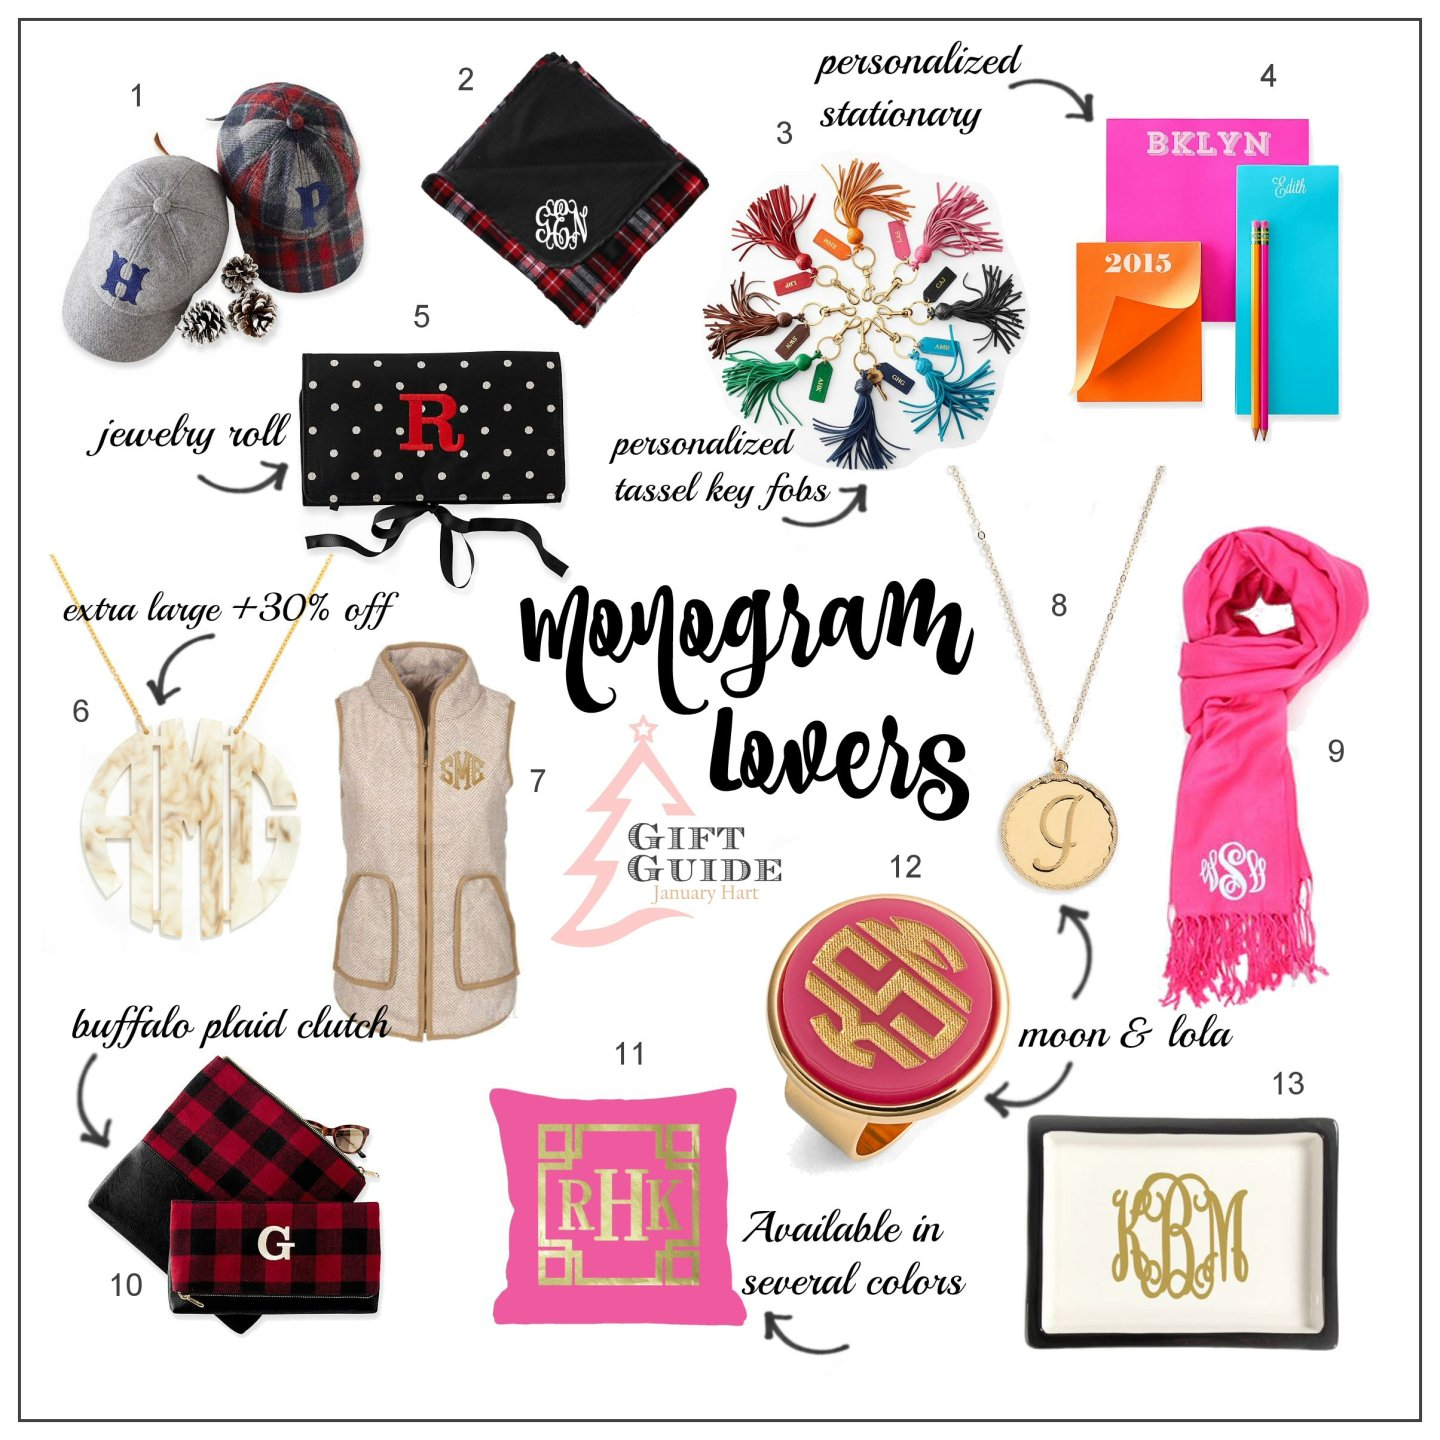 Monogram Lovers Gift Guide 2015